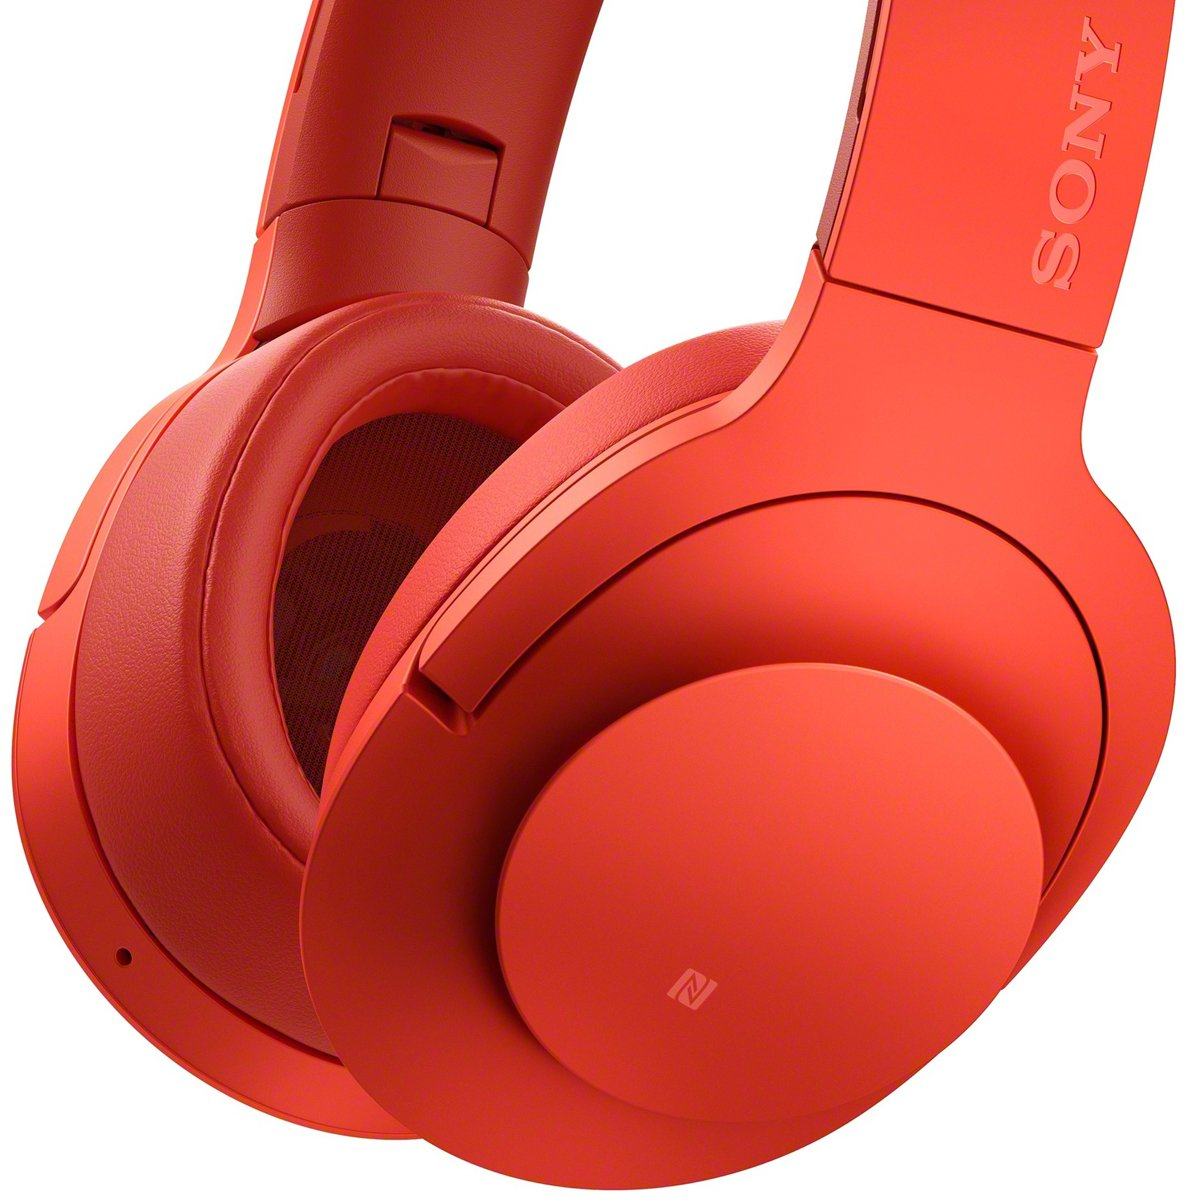 Sony Mdr100abnr Wireless Over Ear Headphone With Bluetooth And Nfc Hear On Noice Cancelling Mdr 100abn Blue